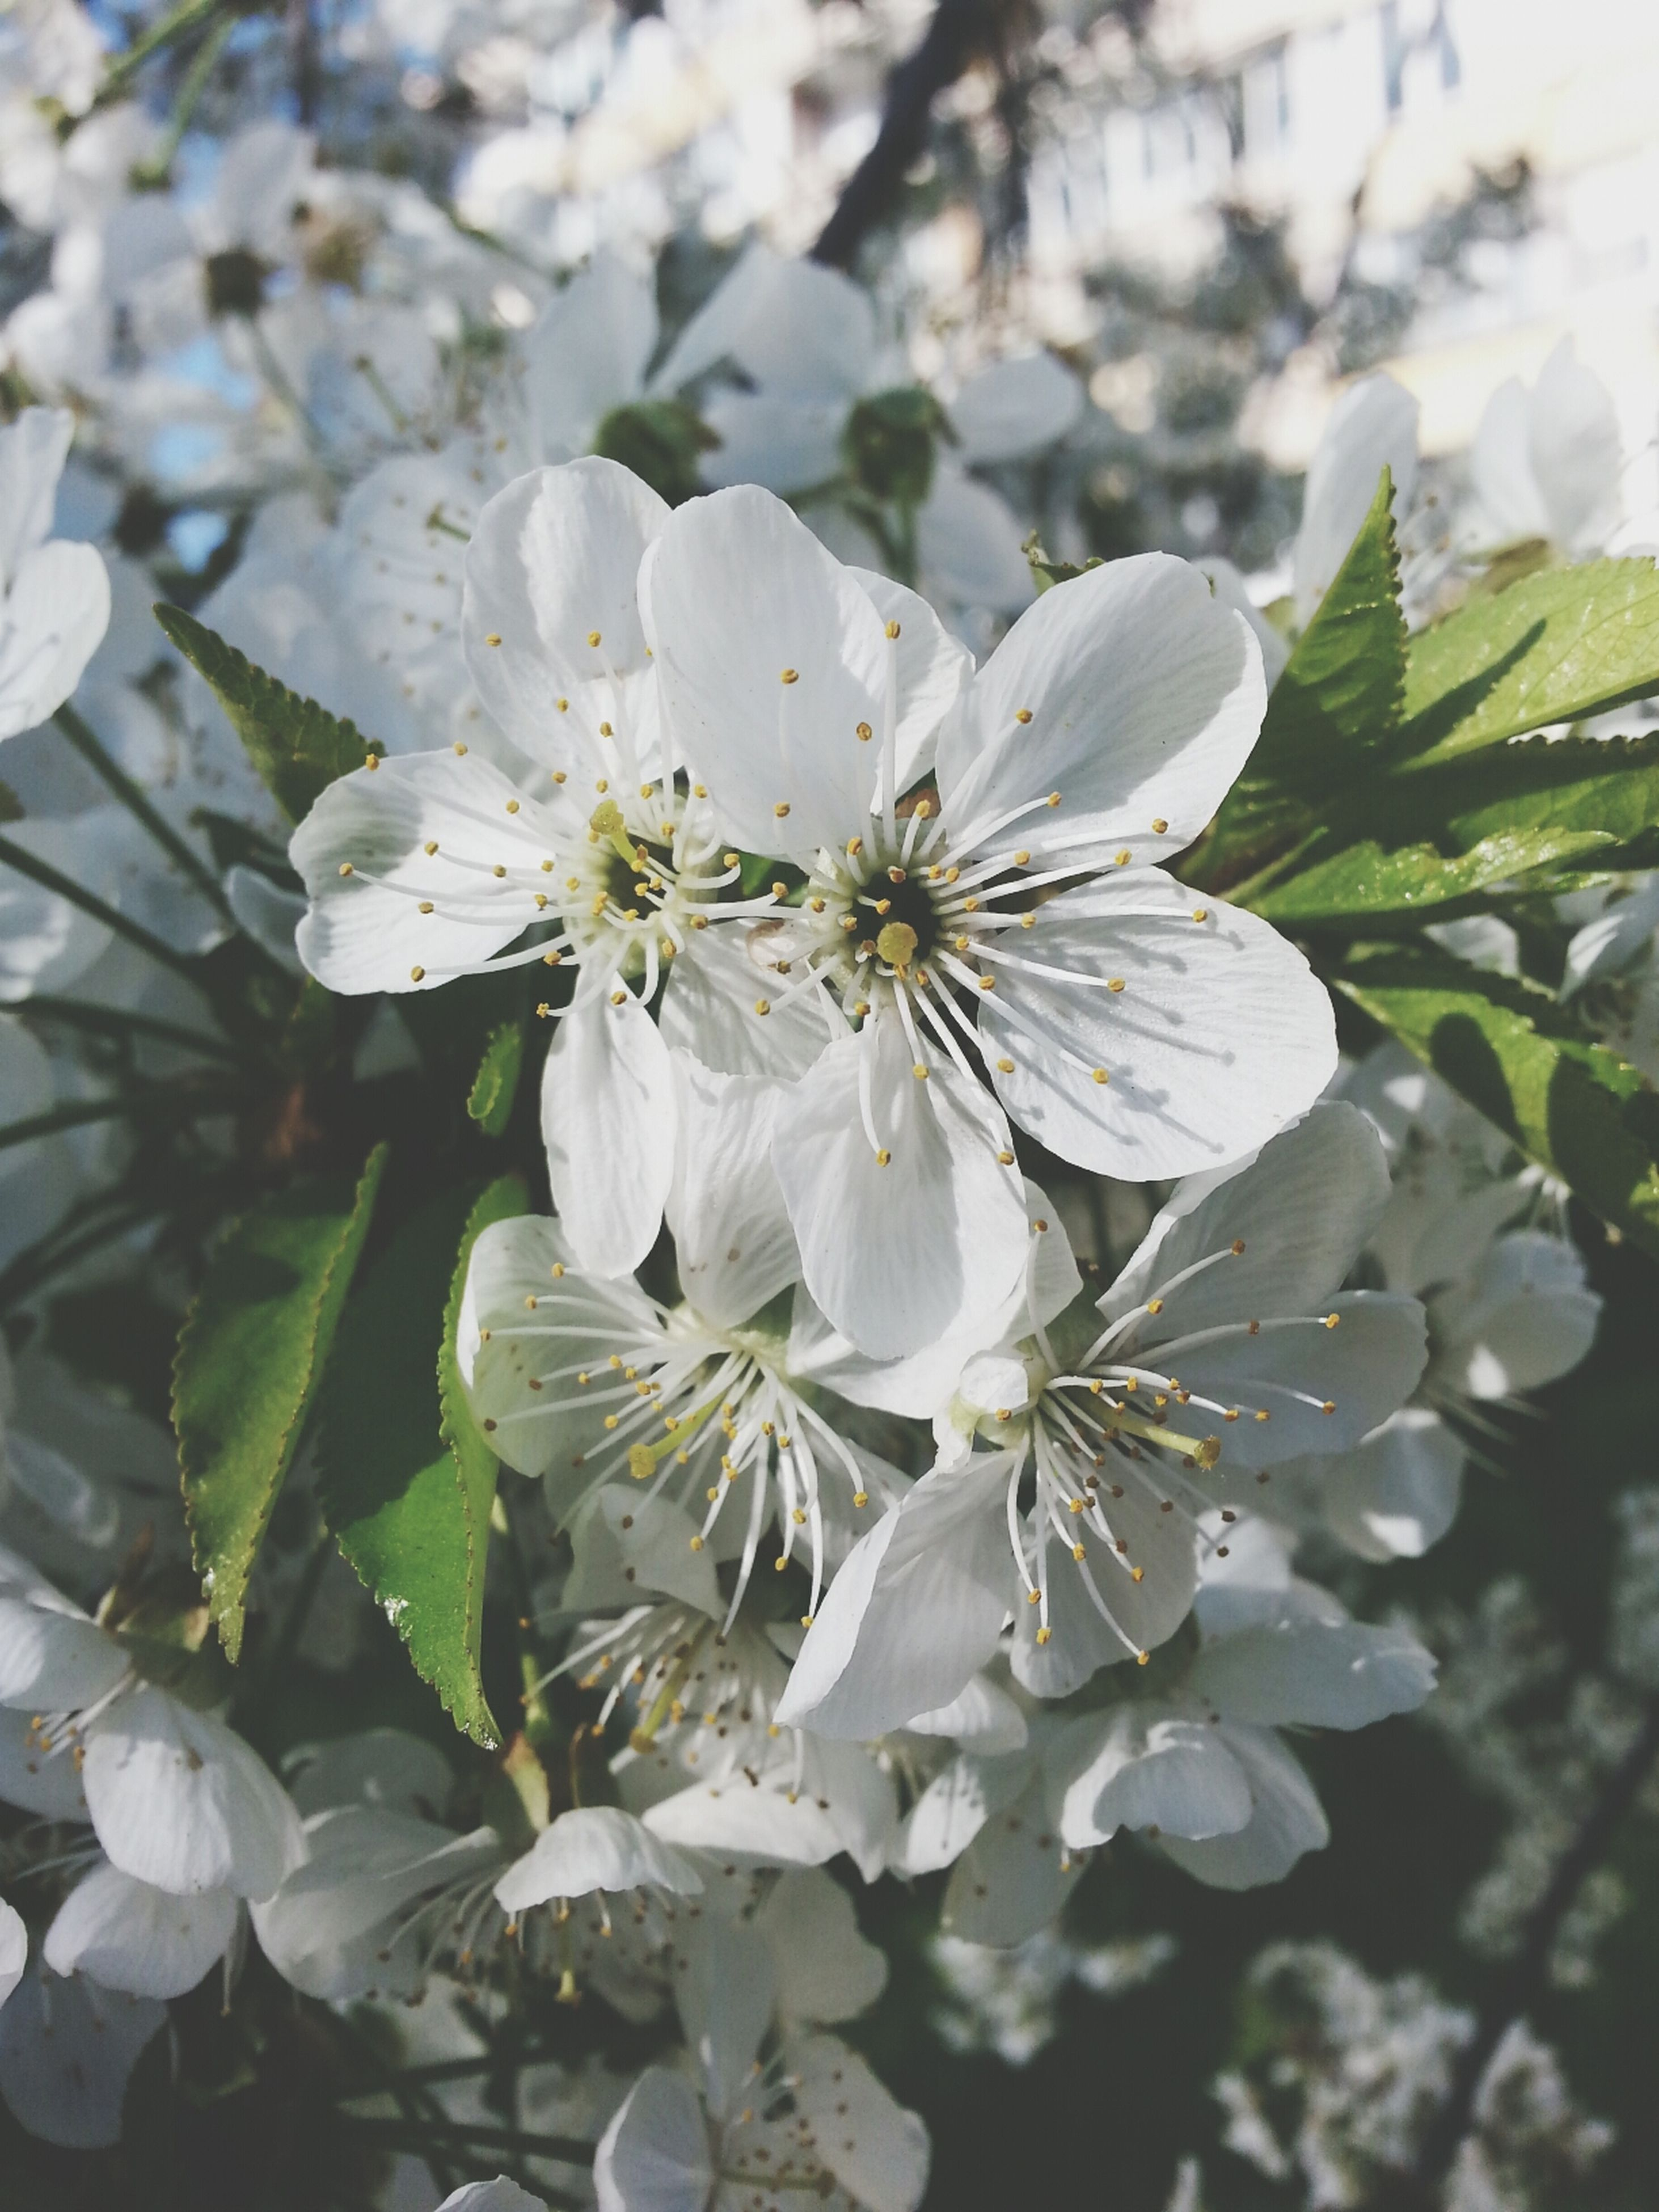 flower, freshness, growth, fragility, petal, white color, flower head, close-up, beauty in nature, plant, focus on foreground, nature, leaf, blooming, in bloom, day, outdoors, no people, pollen, blossom